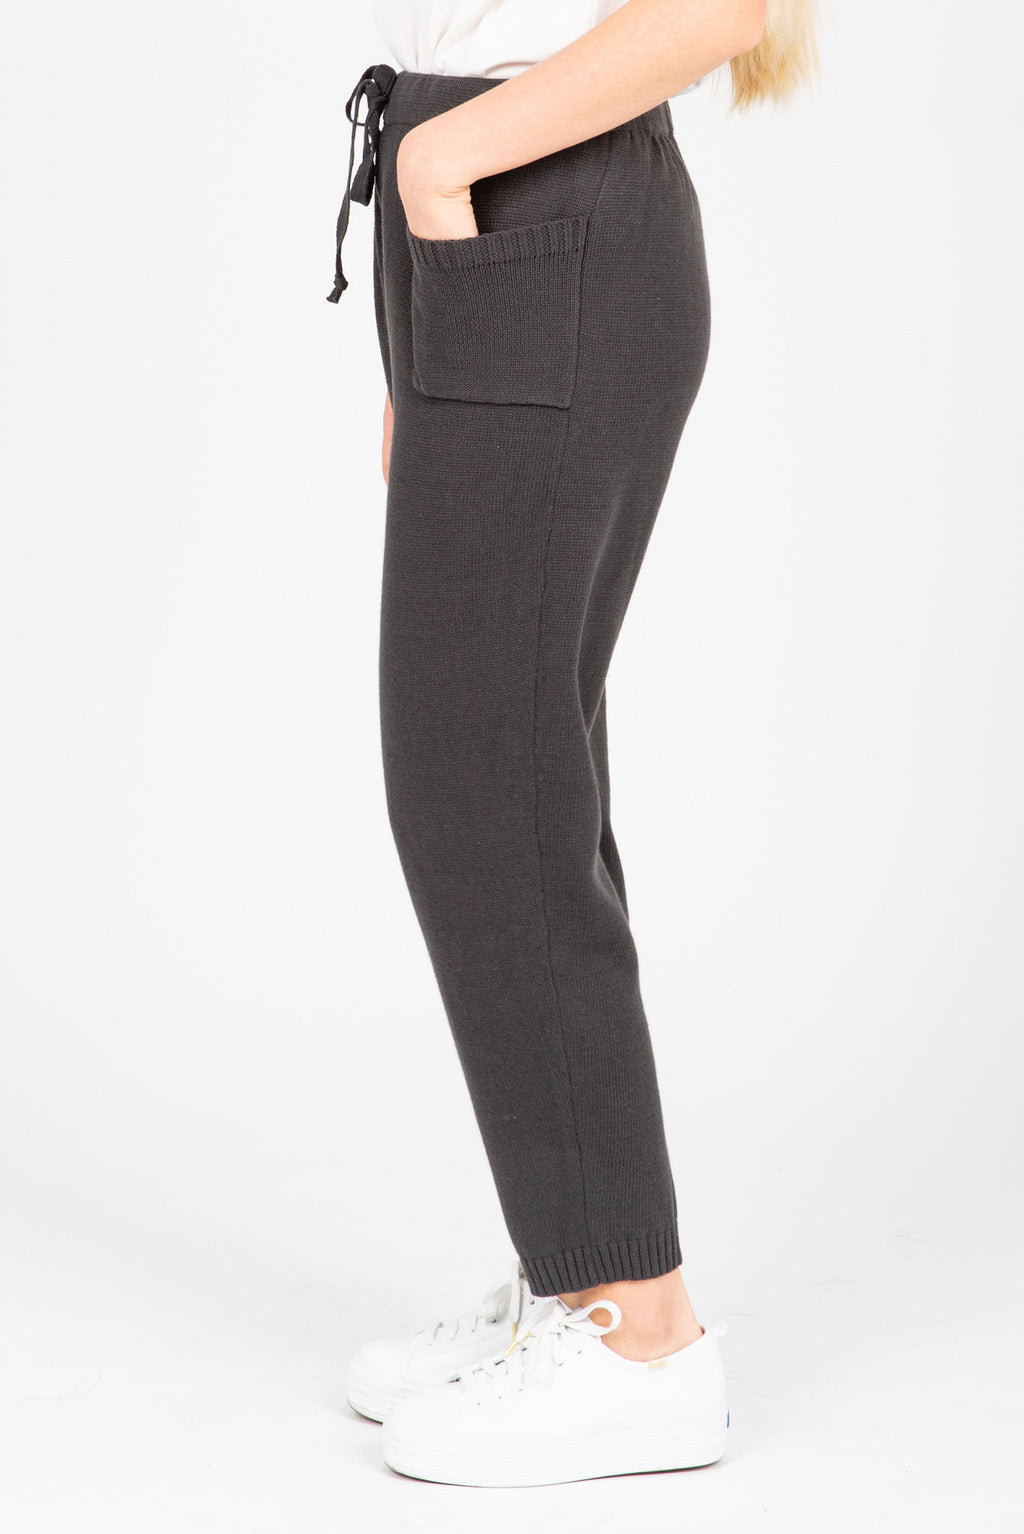 The Asami Knit Pocket Pants in Charcoal